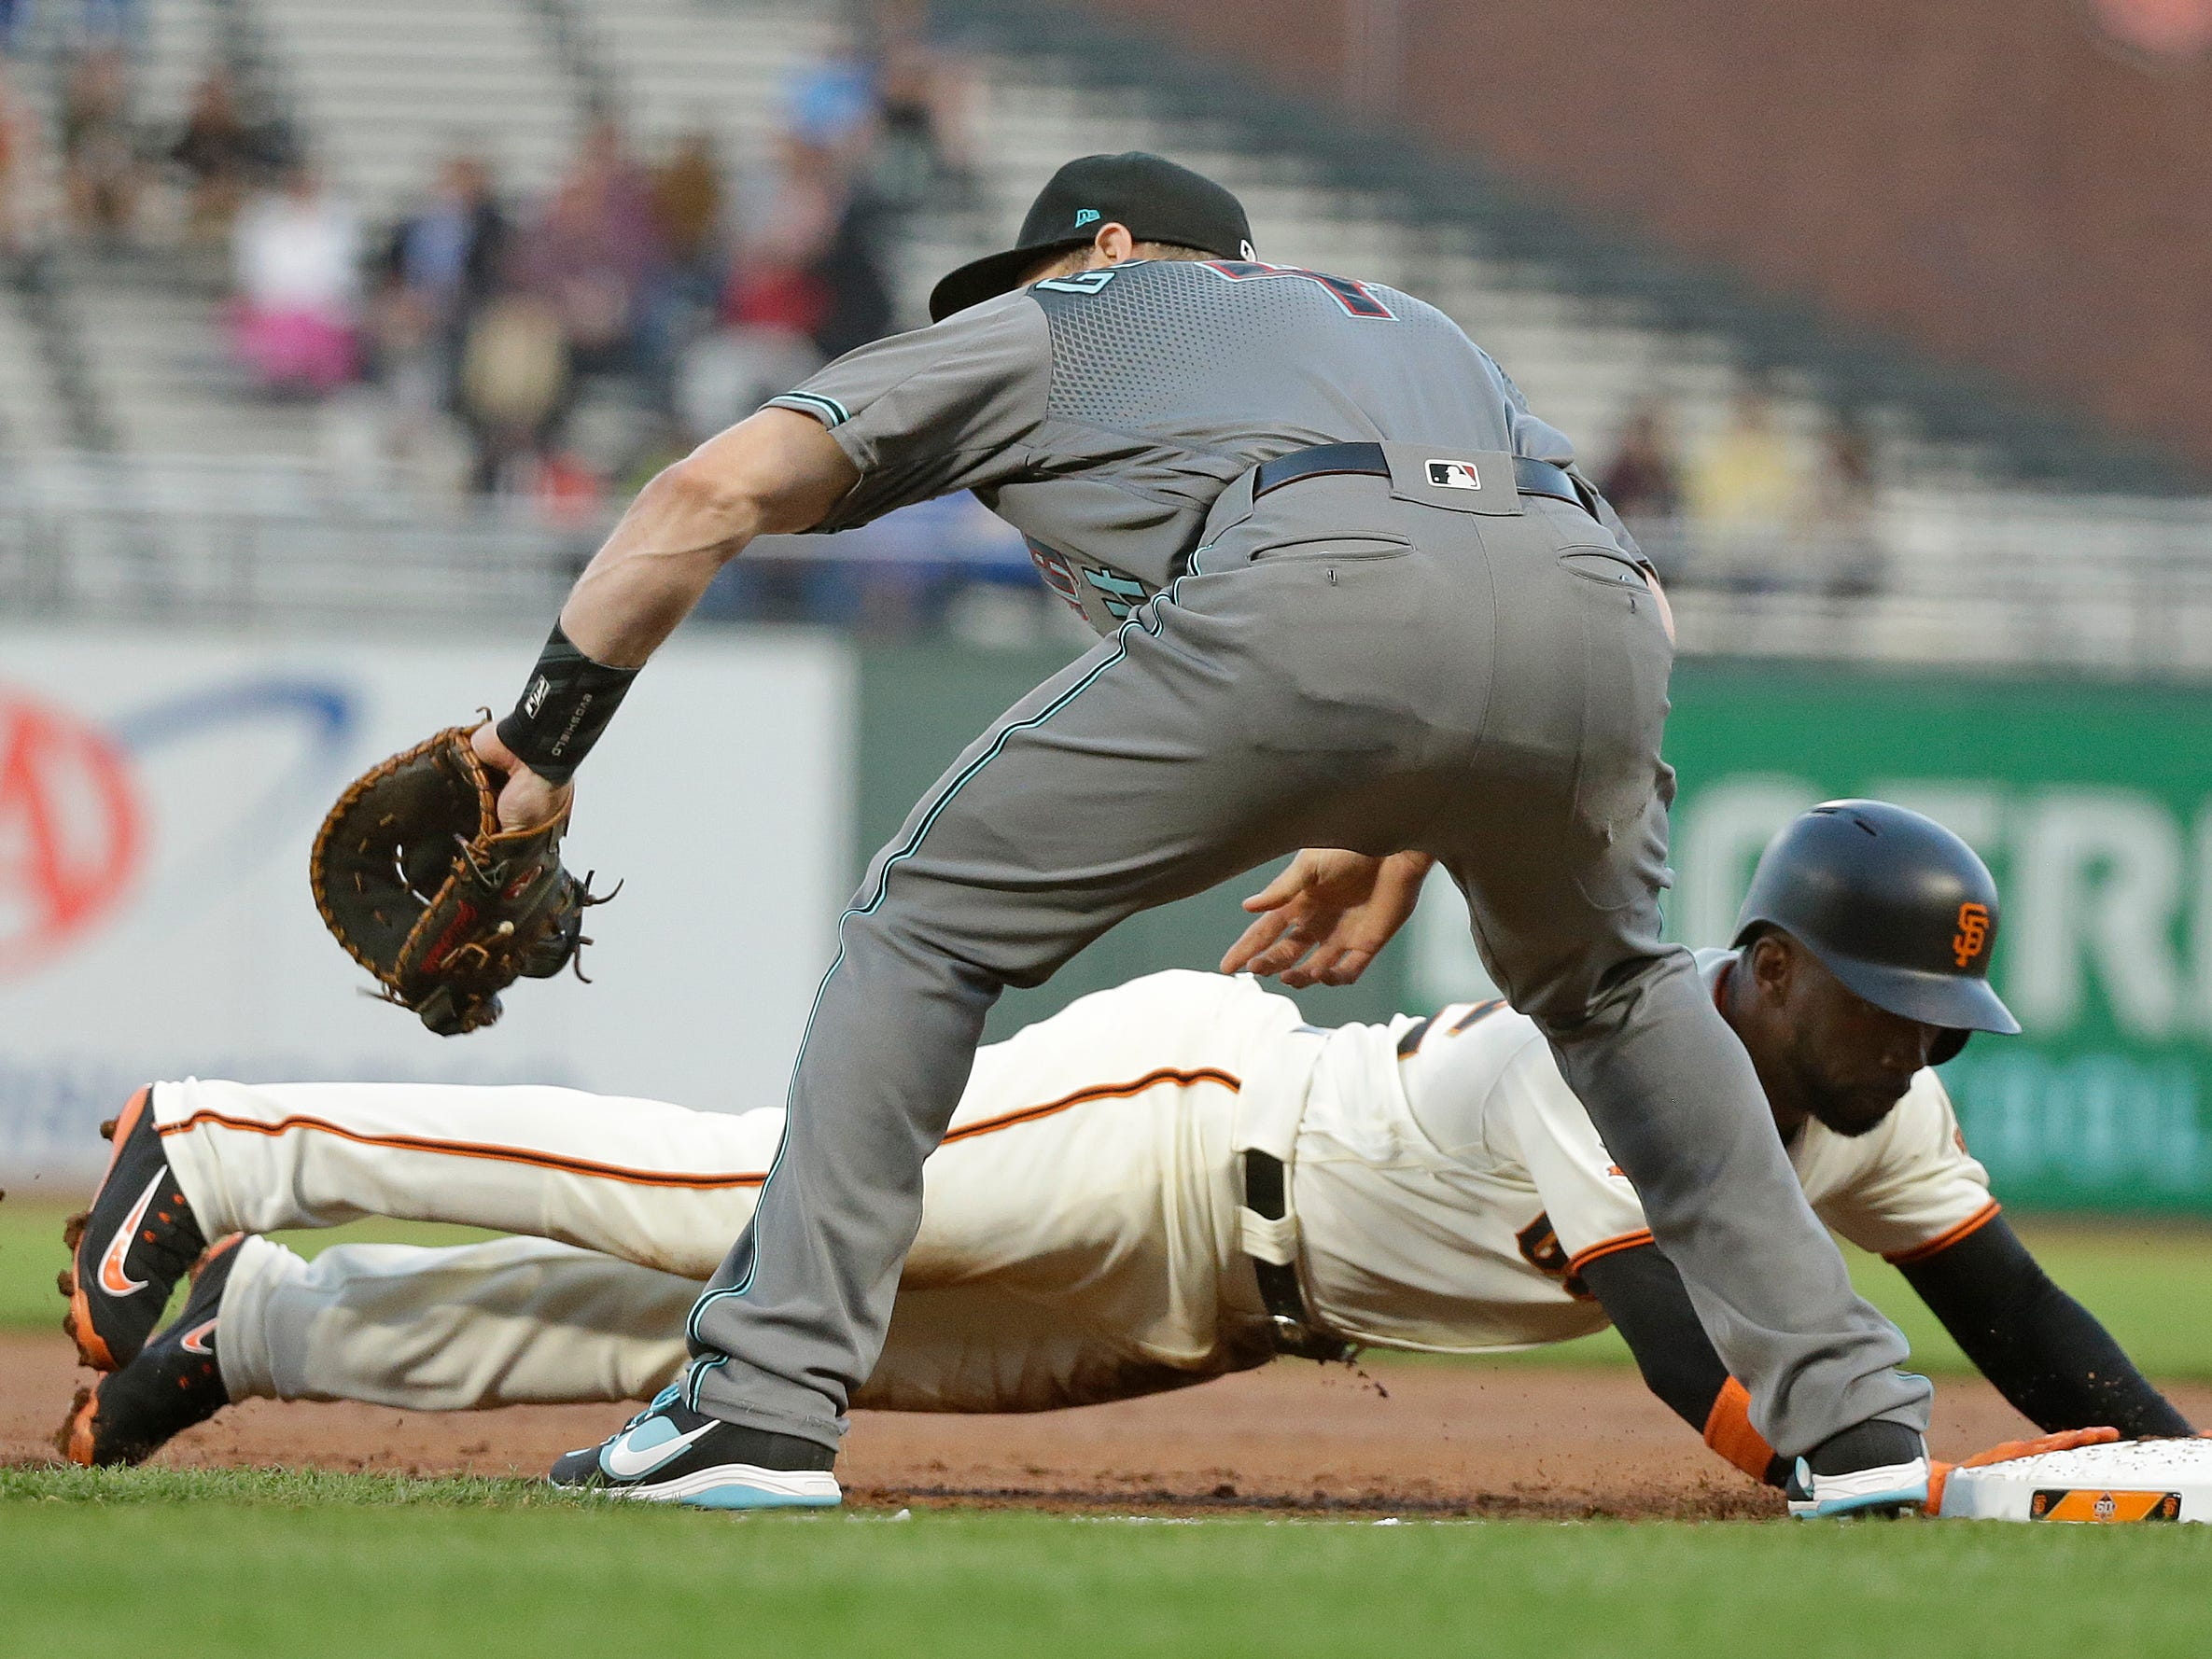 San Francisco Giants' Andrew McCutchen dives safely back to first base on a pick-off attempt as Arizona Diamondbacks first baseman Paul Goldschmidt waits for the throw in the first inning of a baseball game, Tuesday, Aug. 28, 2018, in San Francisco.